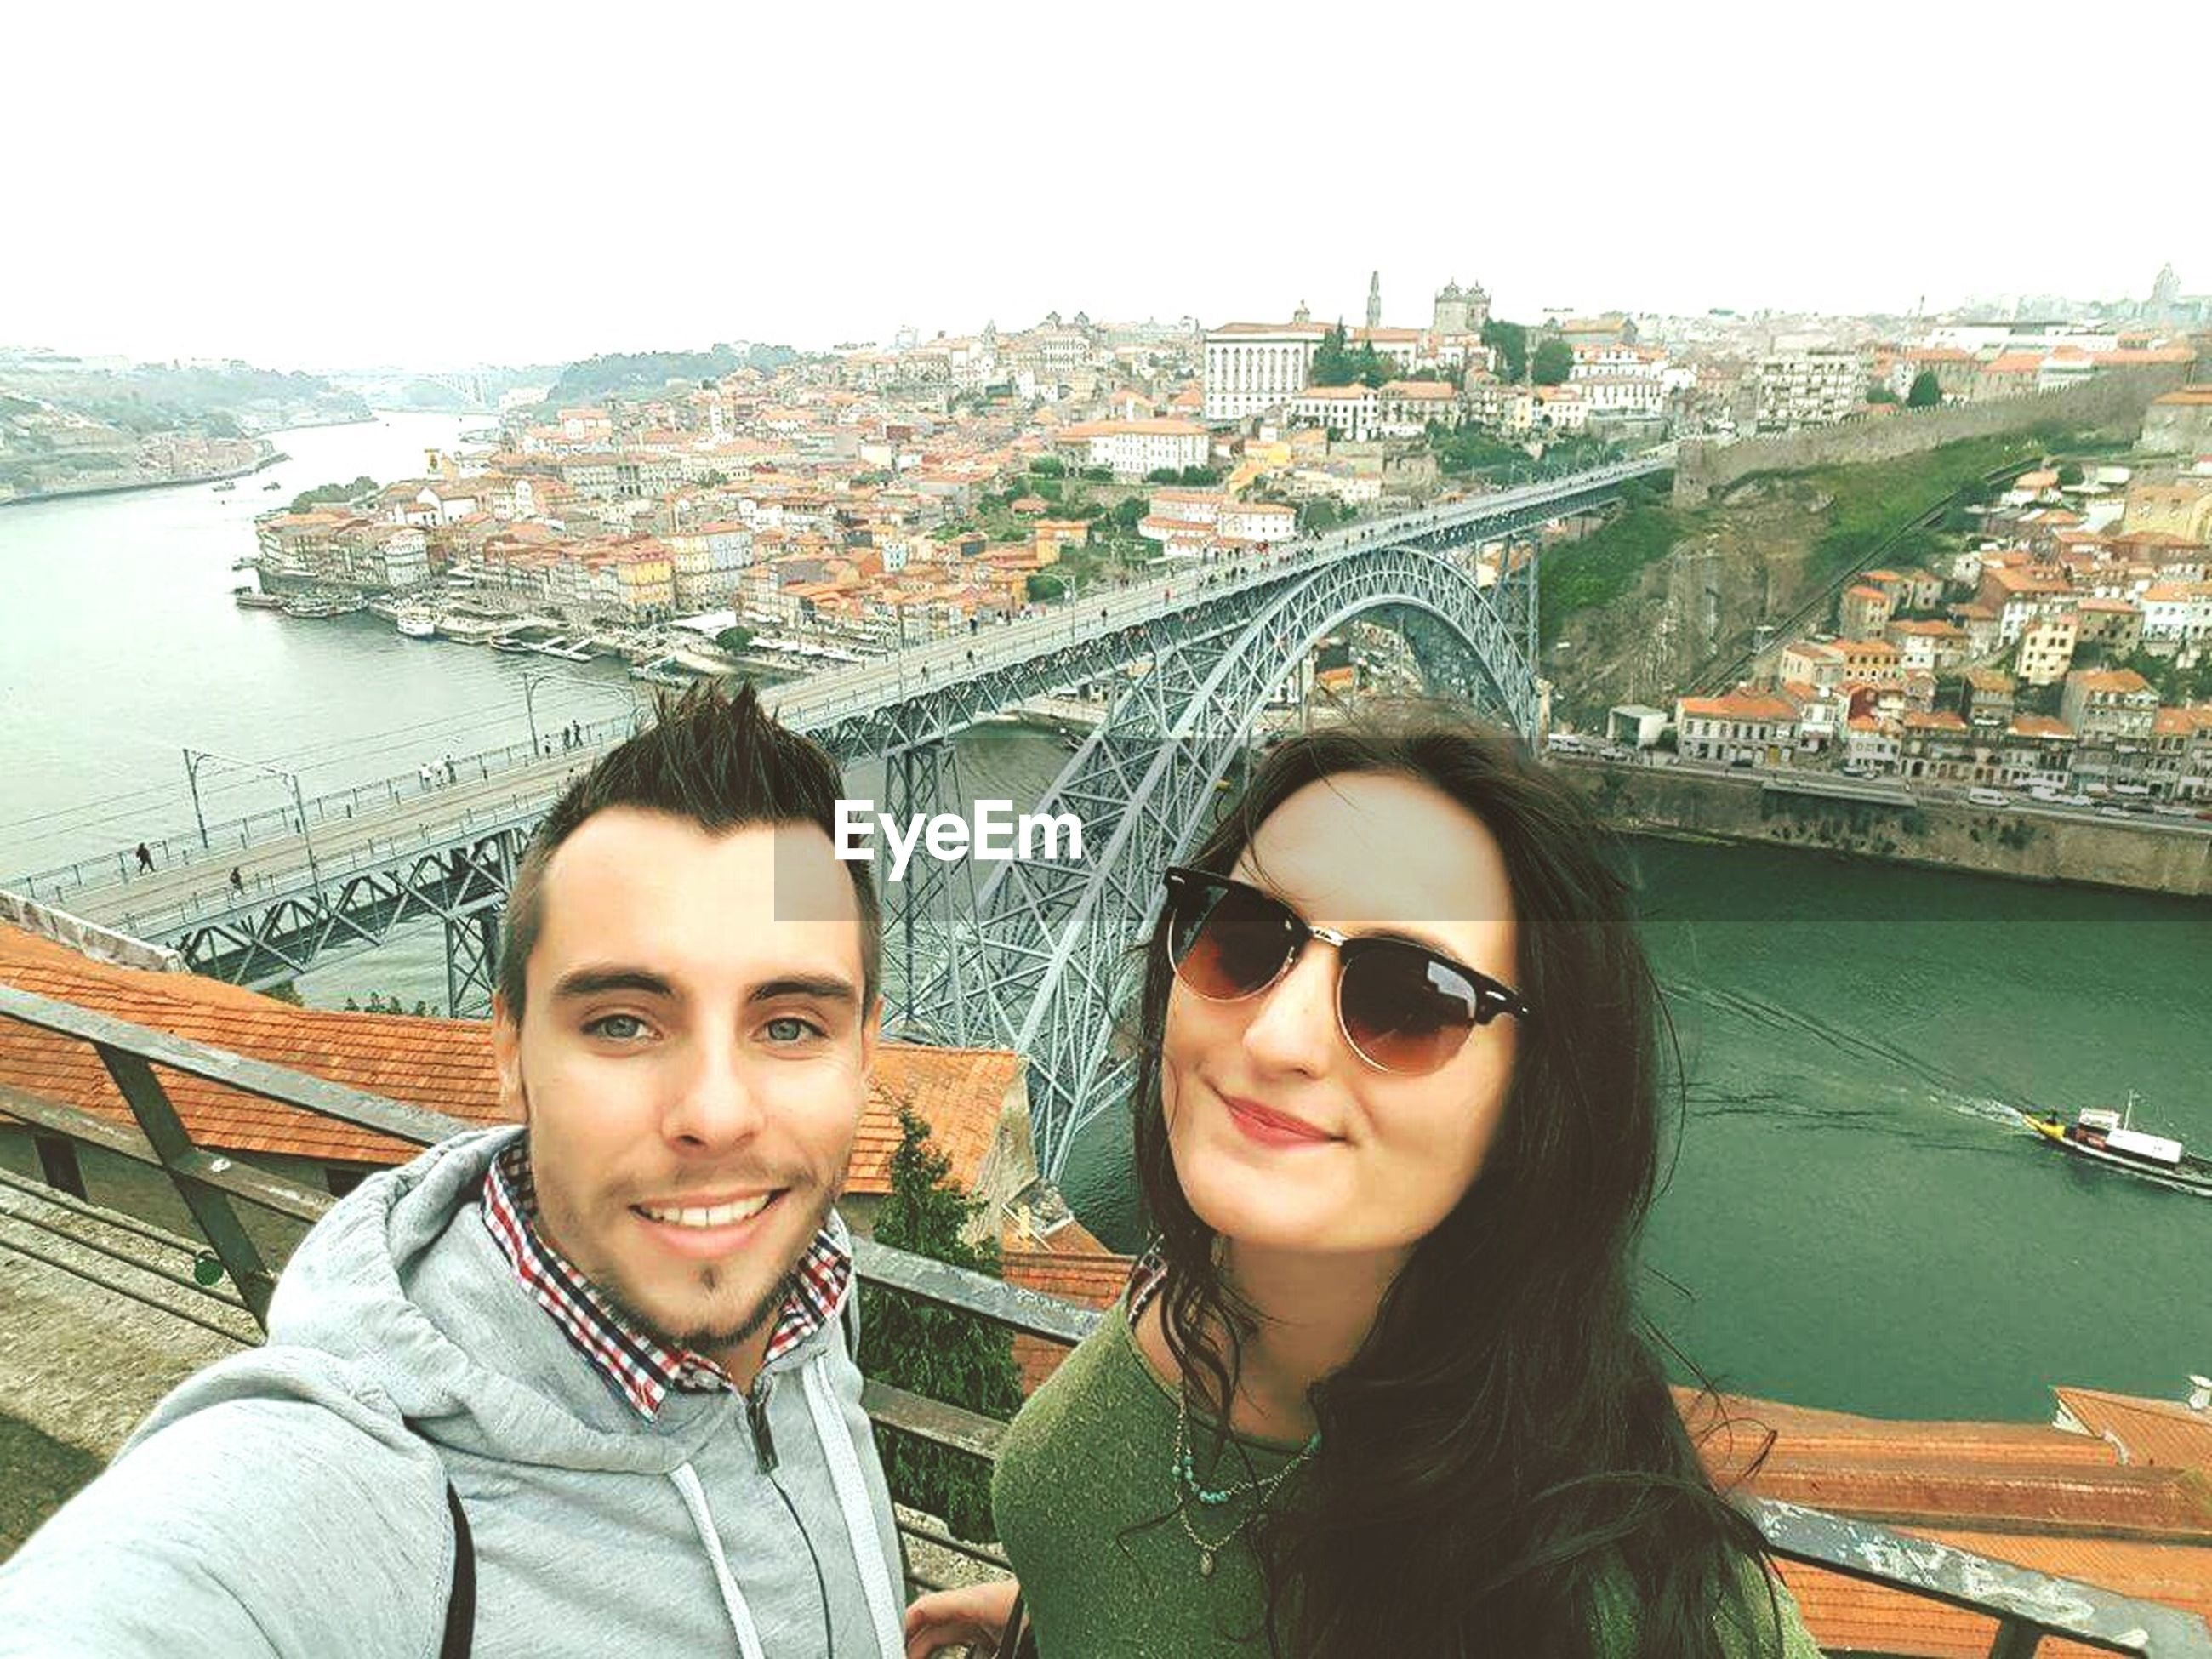 togetherness, city, architecture, leisure activity, river, young women, built structure, building exterior, portrait, looking at camera, lifestyles, cityscape, bonding, transportation, love, water, young adult, clear sky, bridge - man made structure, day, friendship, city life, casual clothing, friends, outdoors, vacations